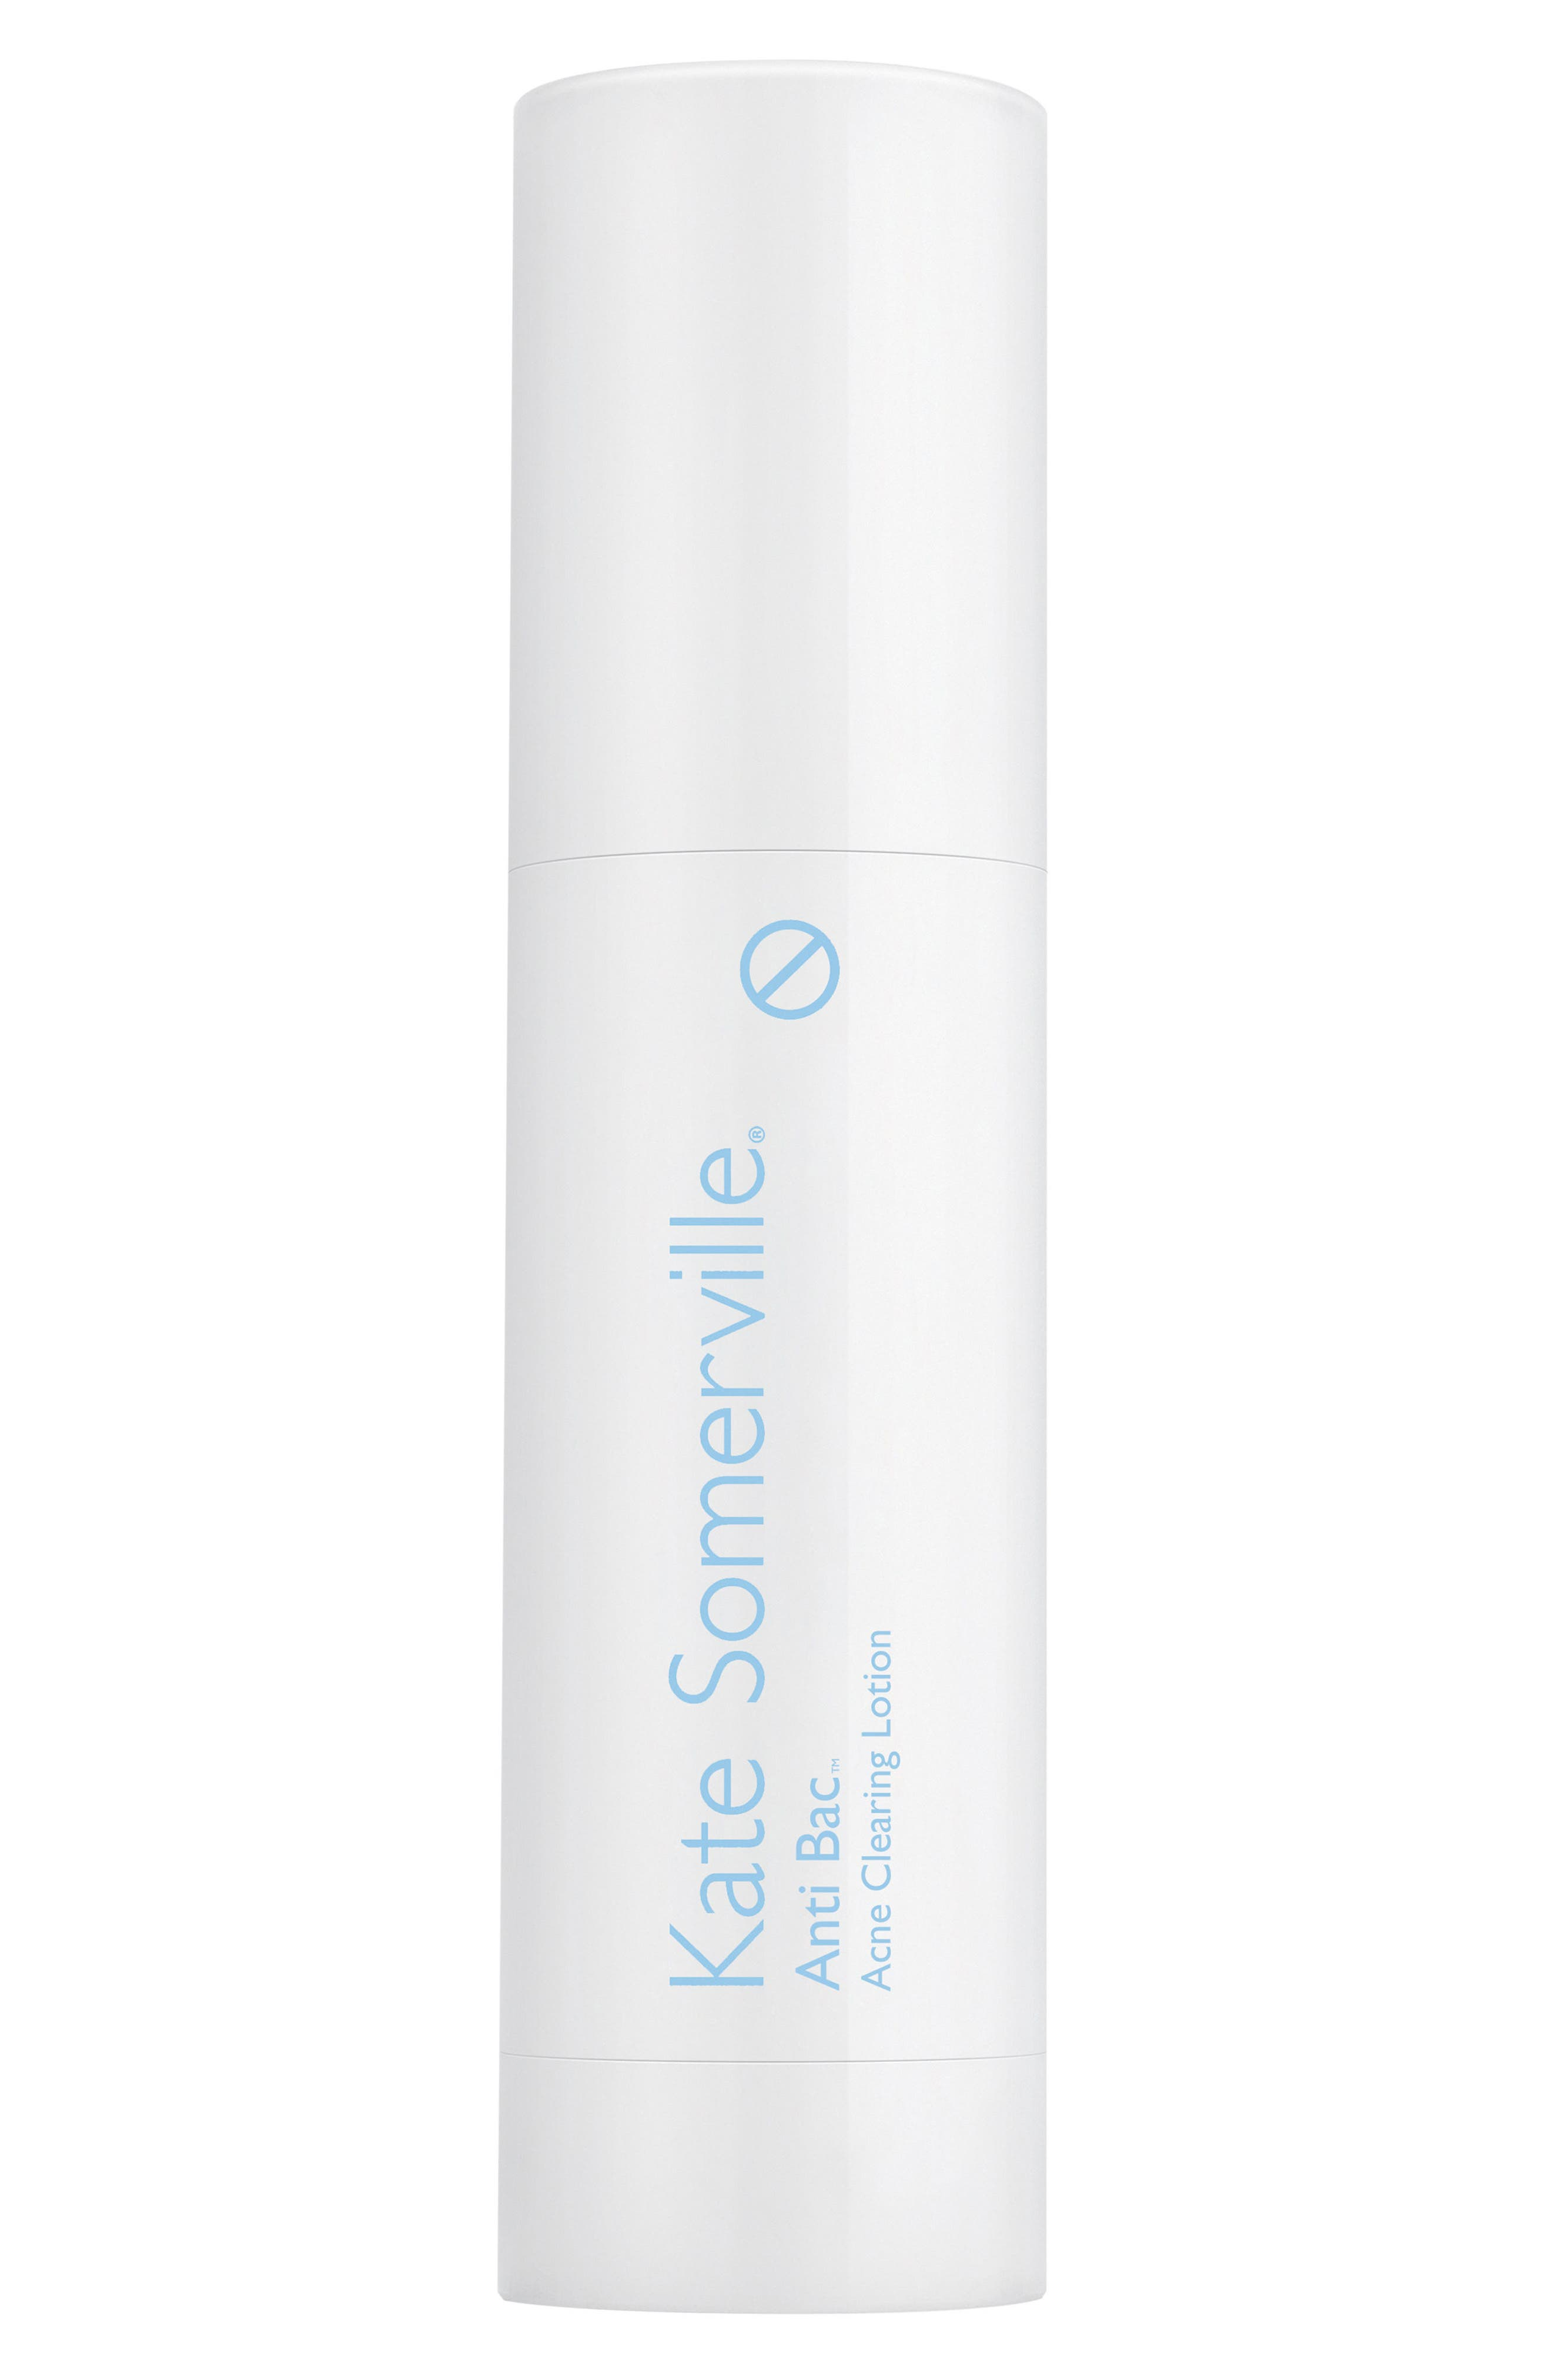 Main Image - Kate Somerville® 'Anti Bac' Clearing Lotion